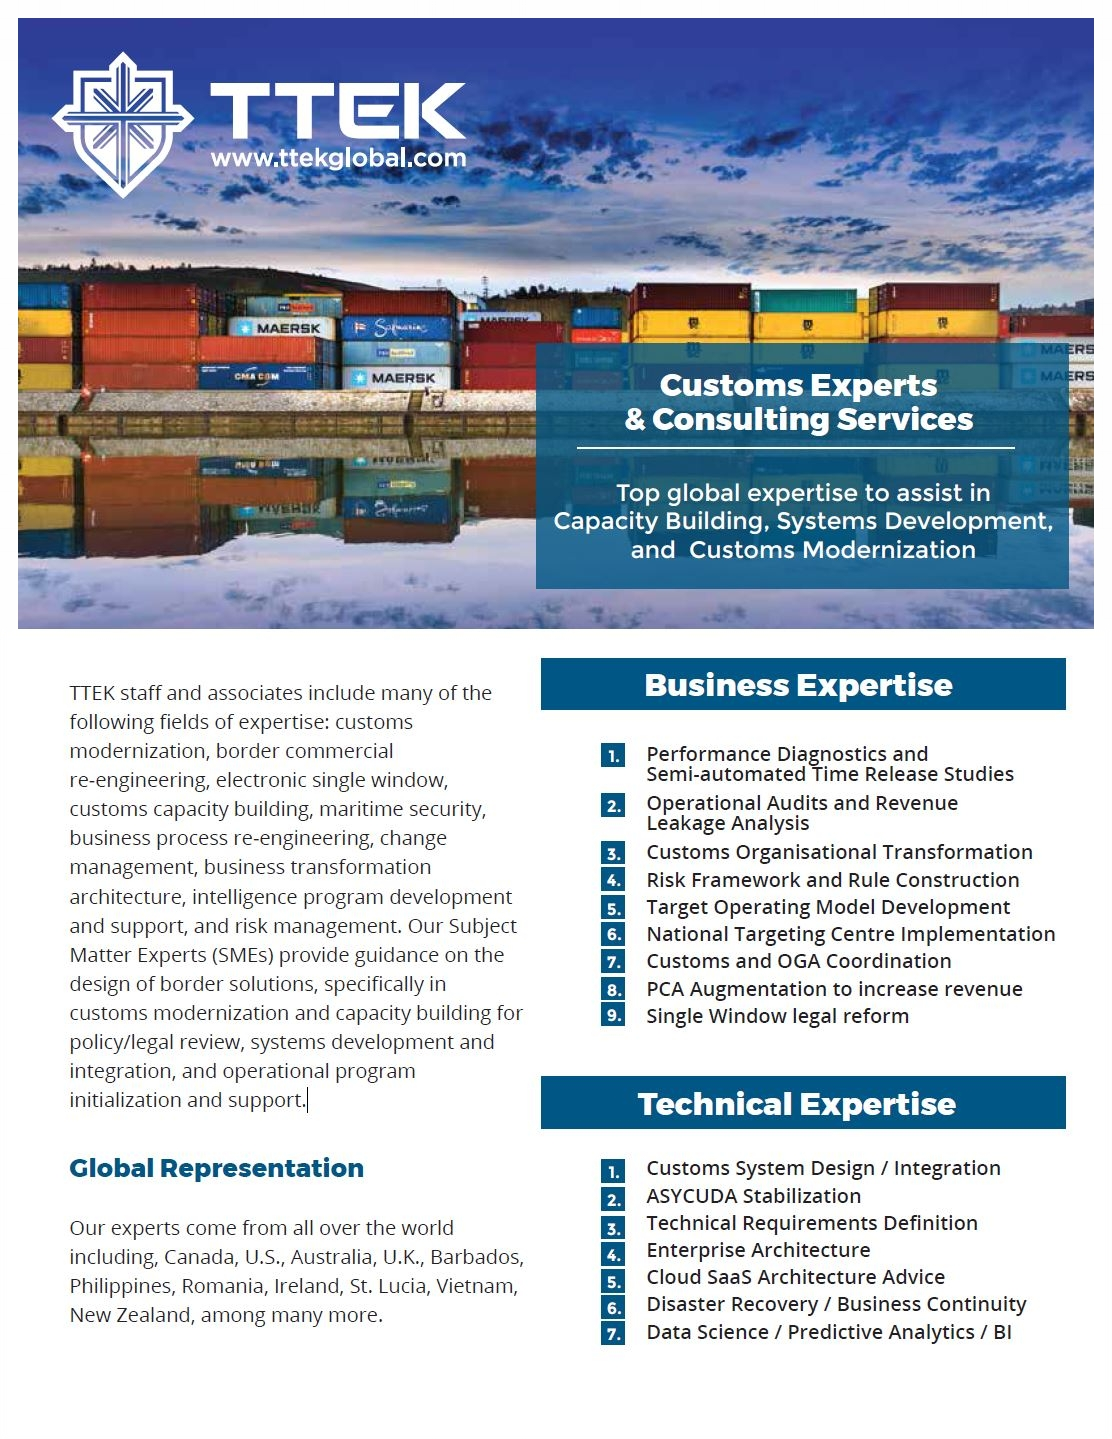 1000+ Domain Years of Experience and over 80 Experts Available. - Our experts come from all over the worldincluding, Canada, U.S., Australia, U.K., Barbados, Philippines, Romania, Ireland, St. Lucia, Vietnam, New Zealand, among many more.TTEK staff and associates include many of the following fields of expertise: customs modernization, border commercial re-engineering, electronic single window, customs capacity building, maritime security, business process re-engineering, change management, business transformation architecture, intelligence program developmentand support, and risk management.Download our Services Brochure in PDF Format